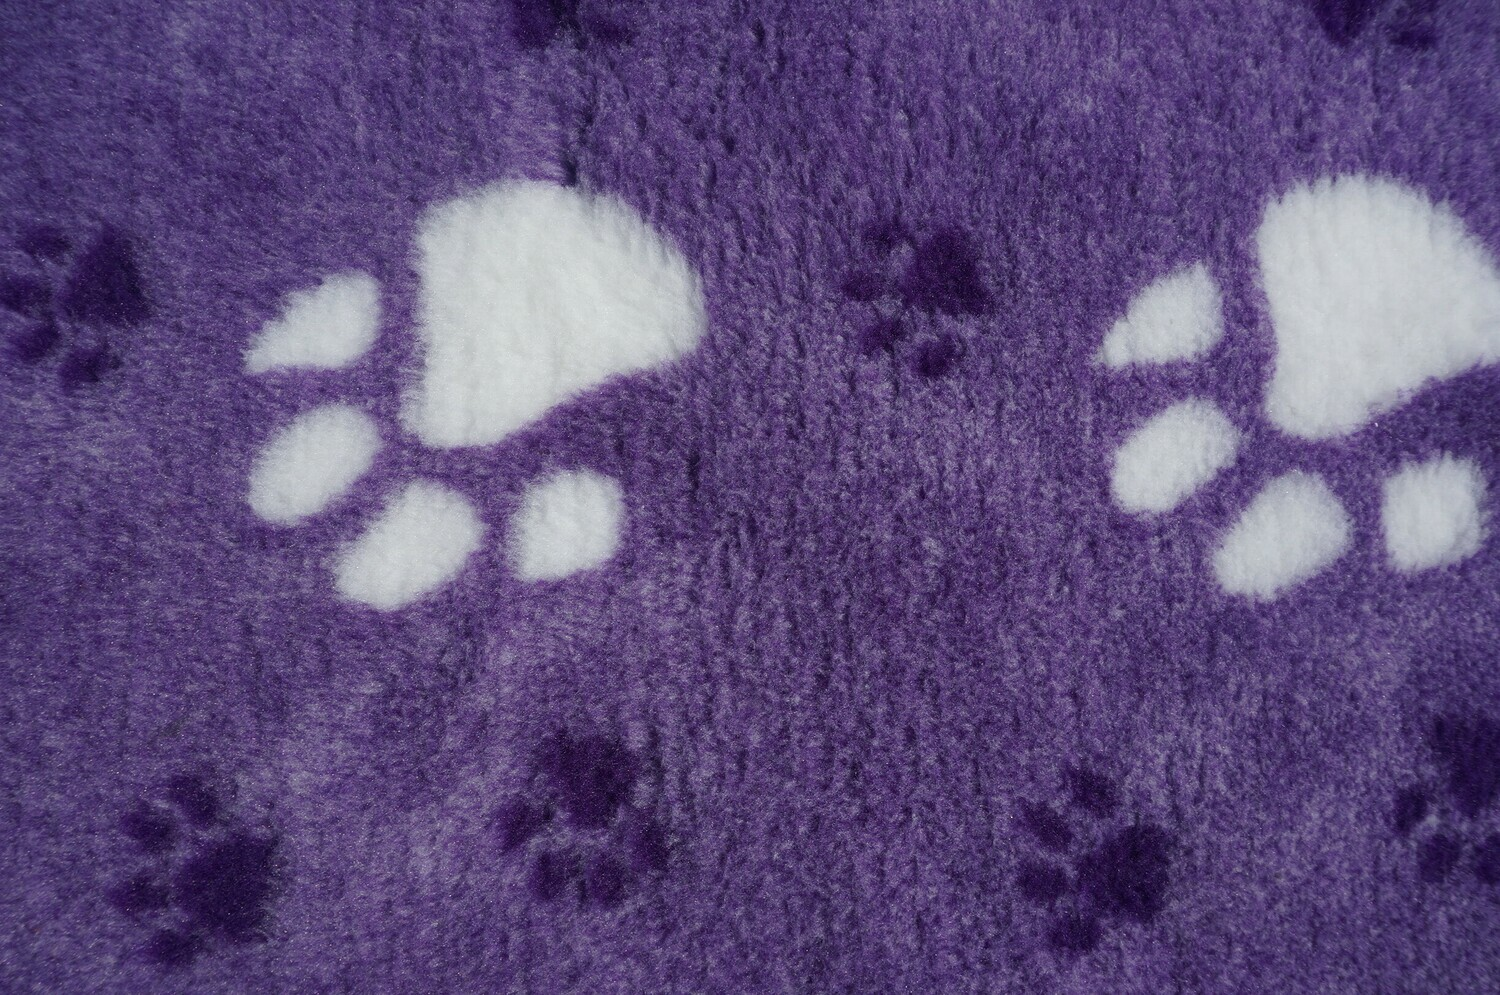 (Single Sheets) Ultra Premium - Non Slip Backing: Big Paw : Purple with Large White & Smaller Regal Paws - Ref : (6260)